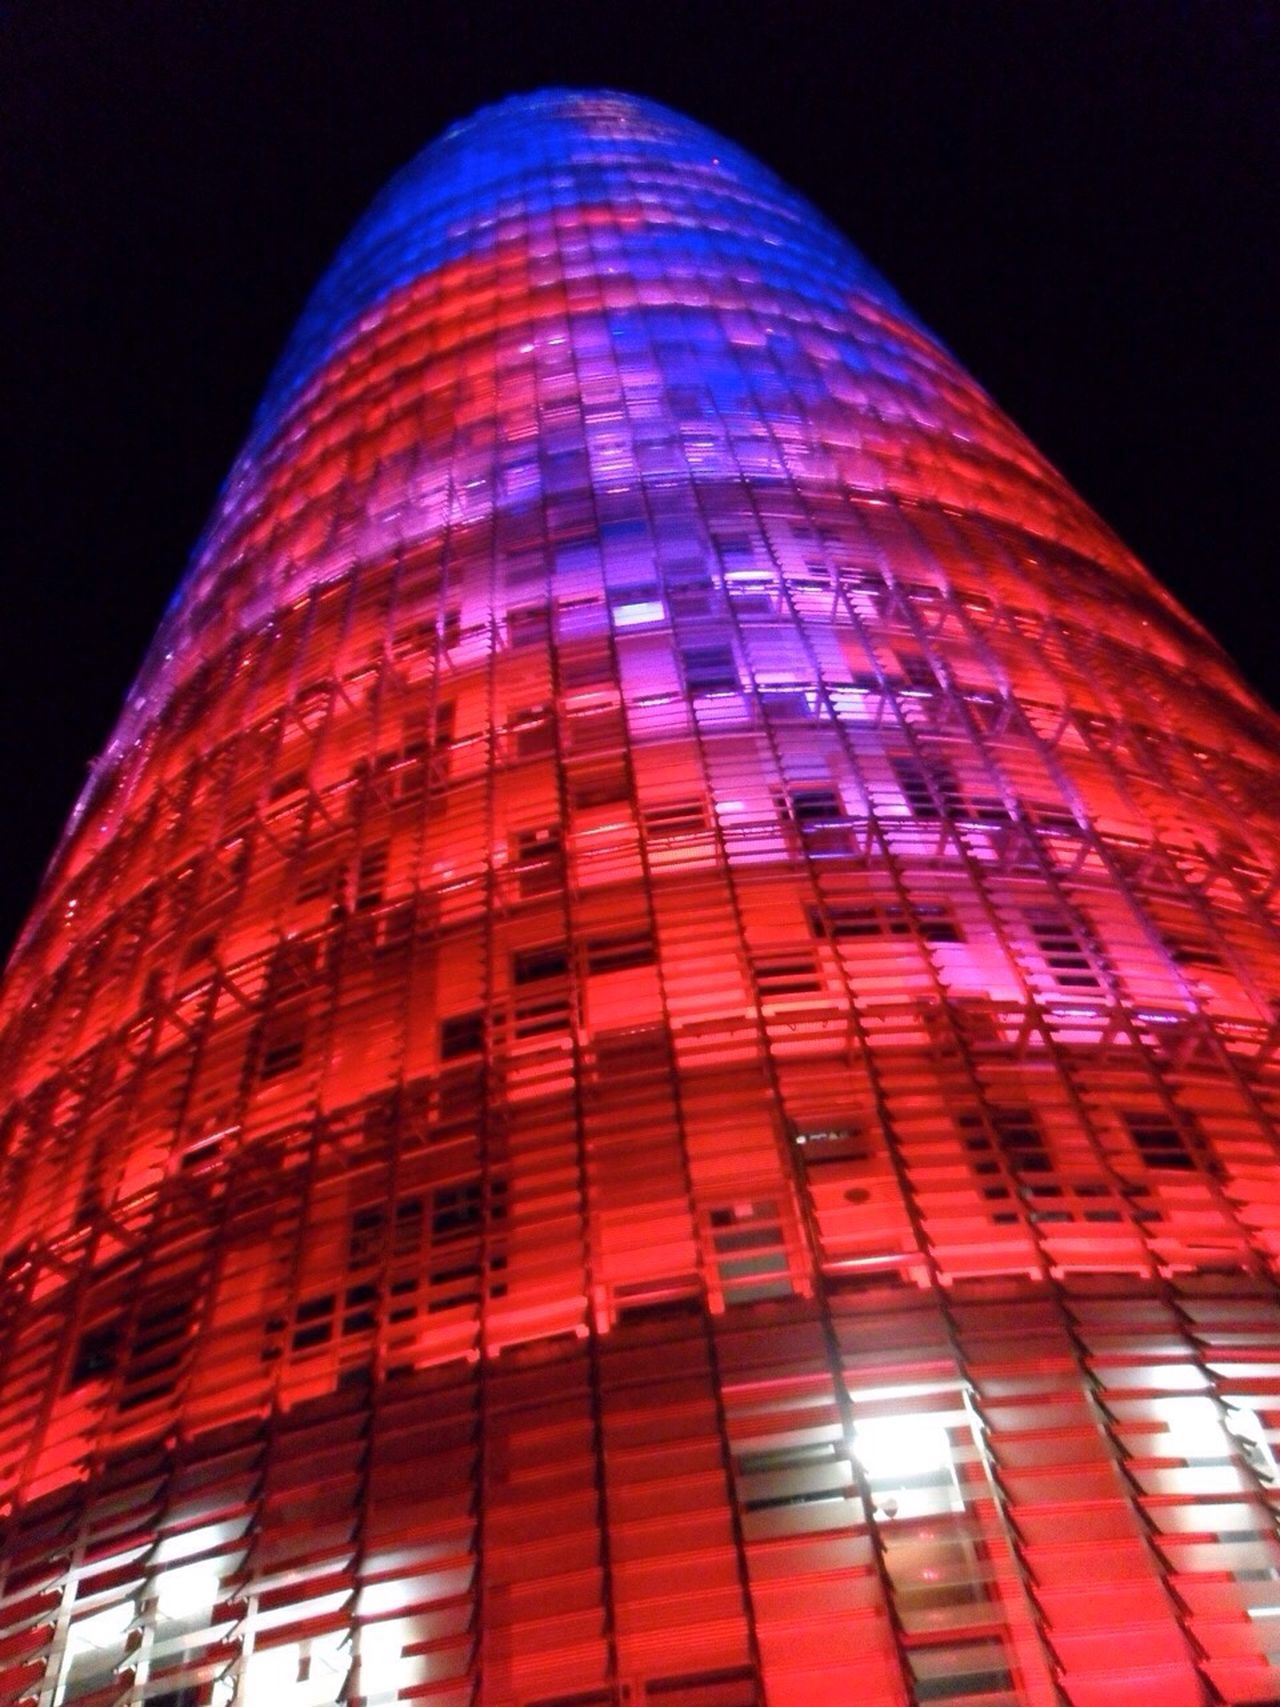 Barcellona Barcelona SPAIN Spagna Architecture Architettura Torre Torre Agbar Rosso Blue Blu Red Luci Rosso E Blu Red And Blue Lights The Week On EyeEm